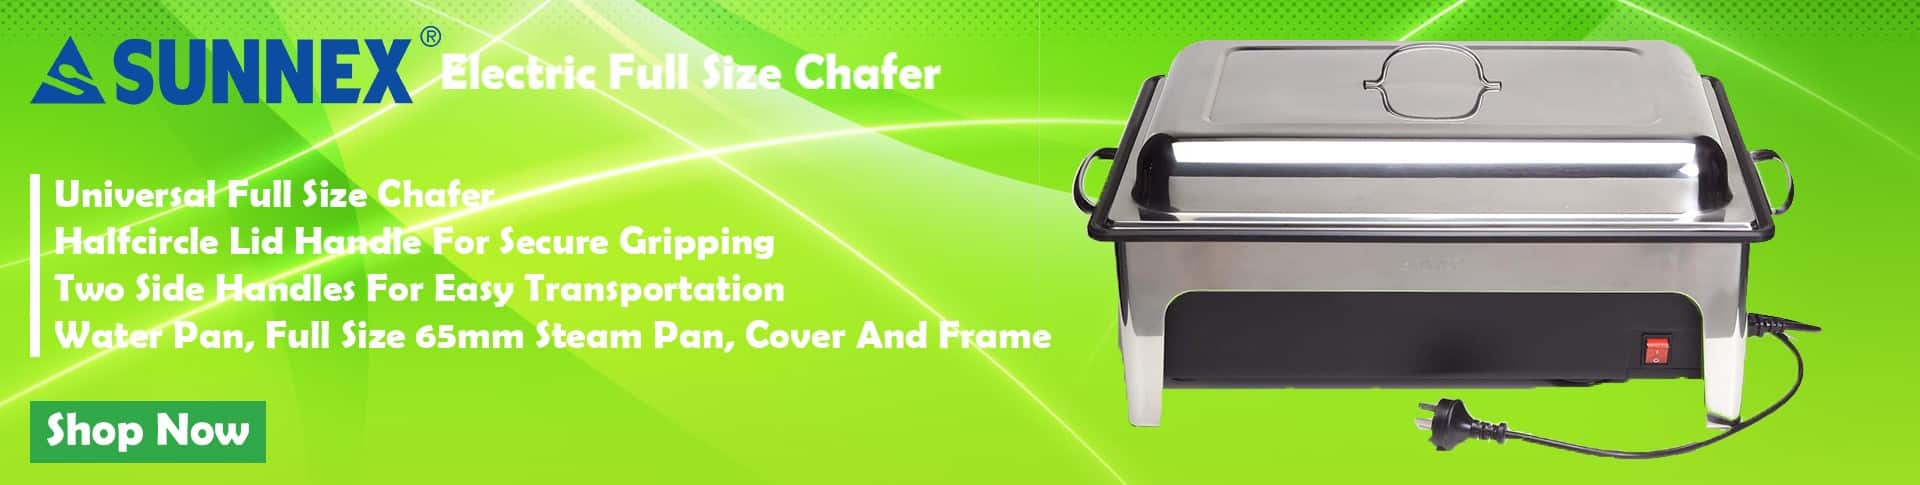 Sunnex Electric Full Size Chafer'